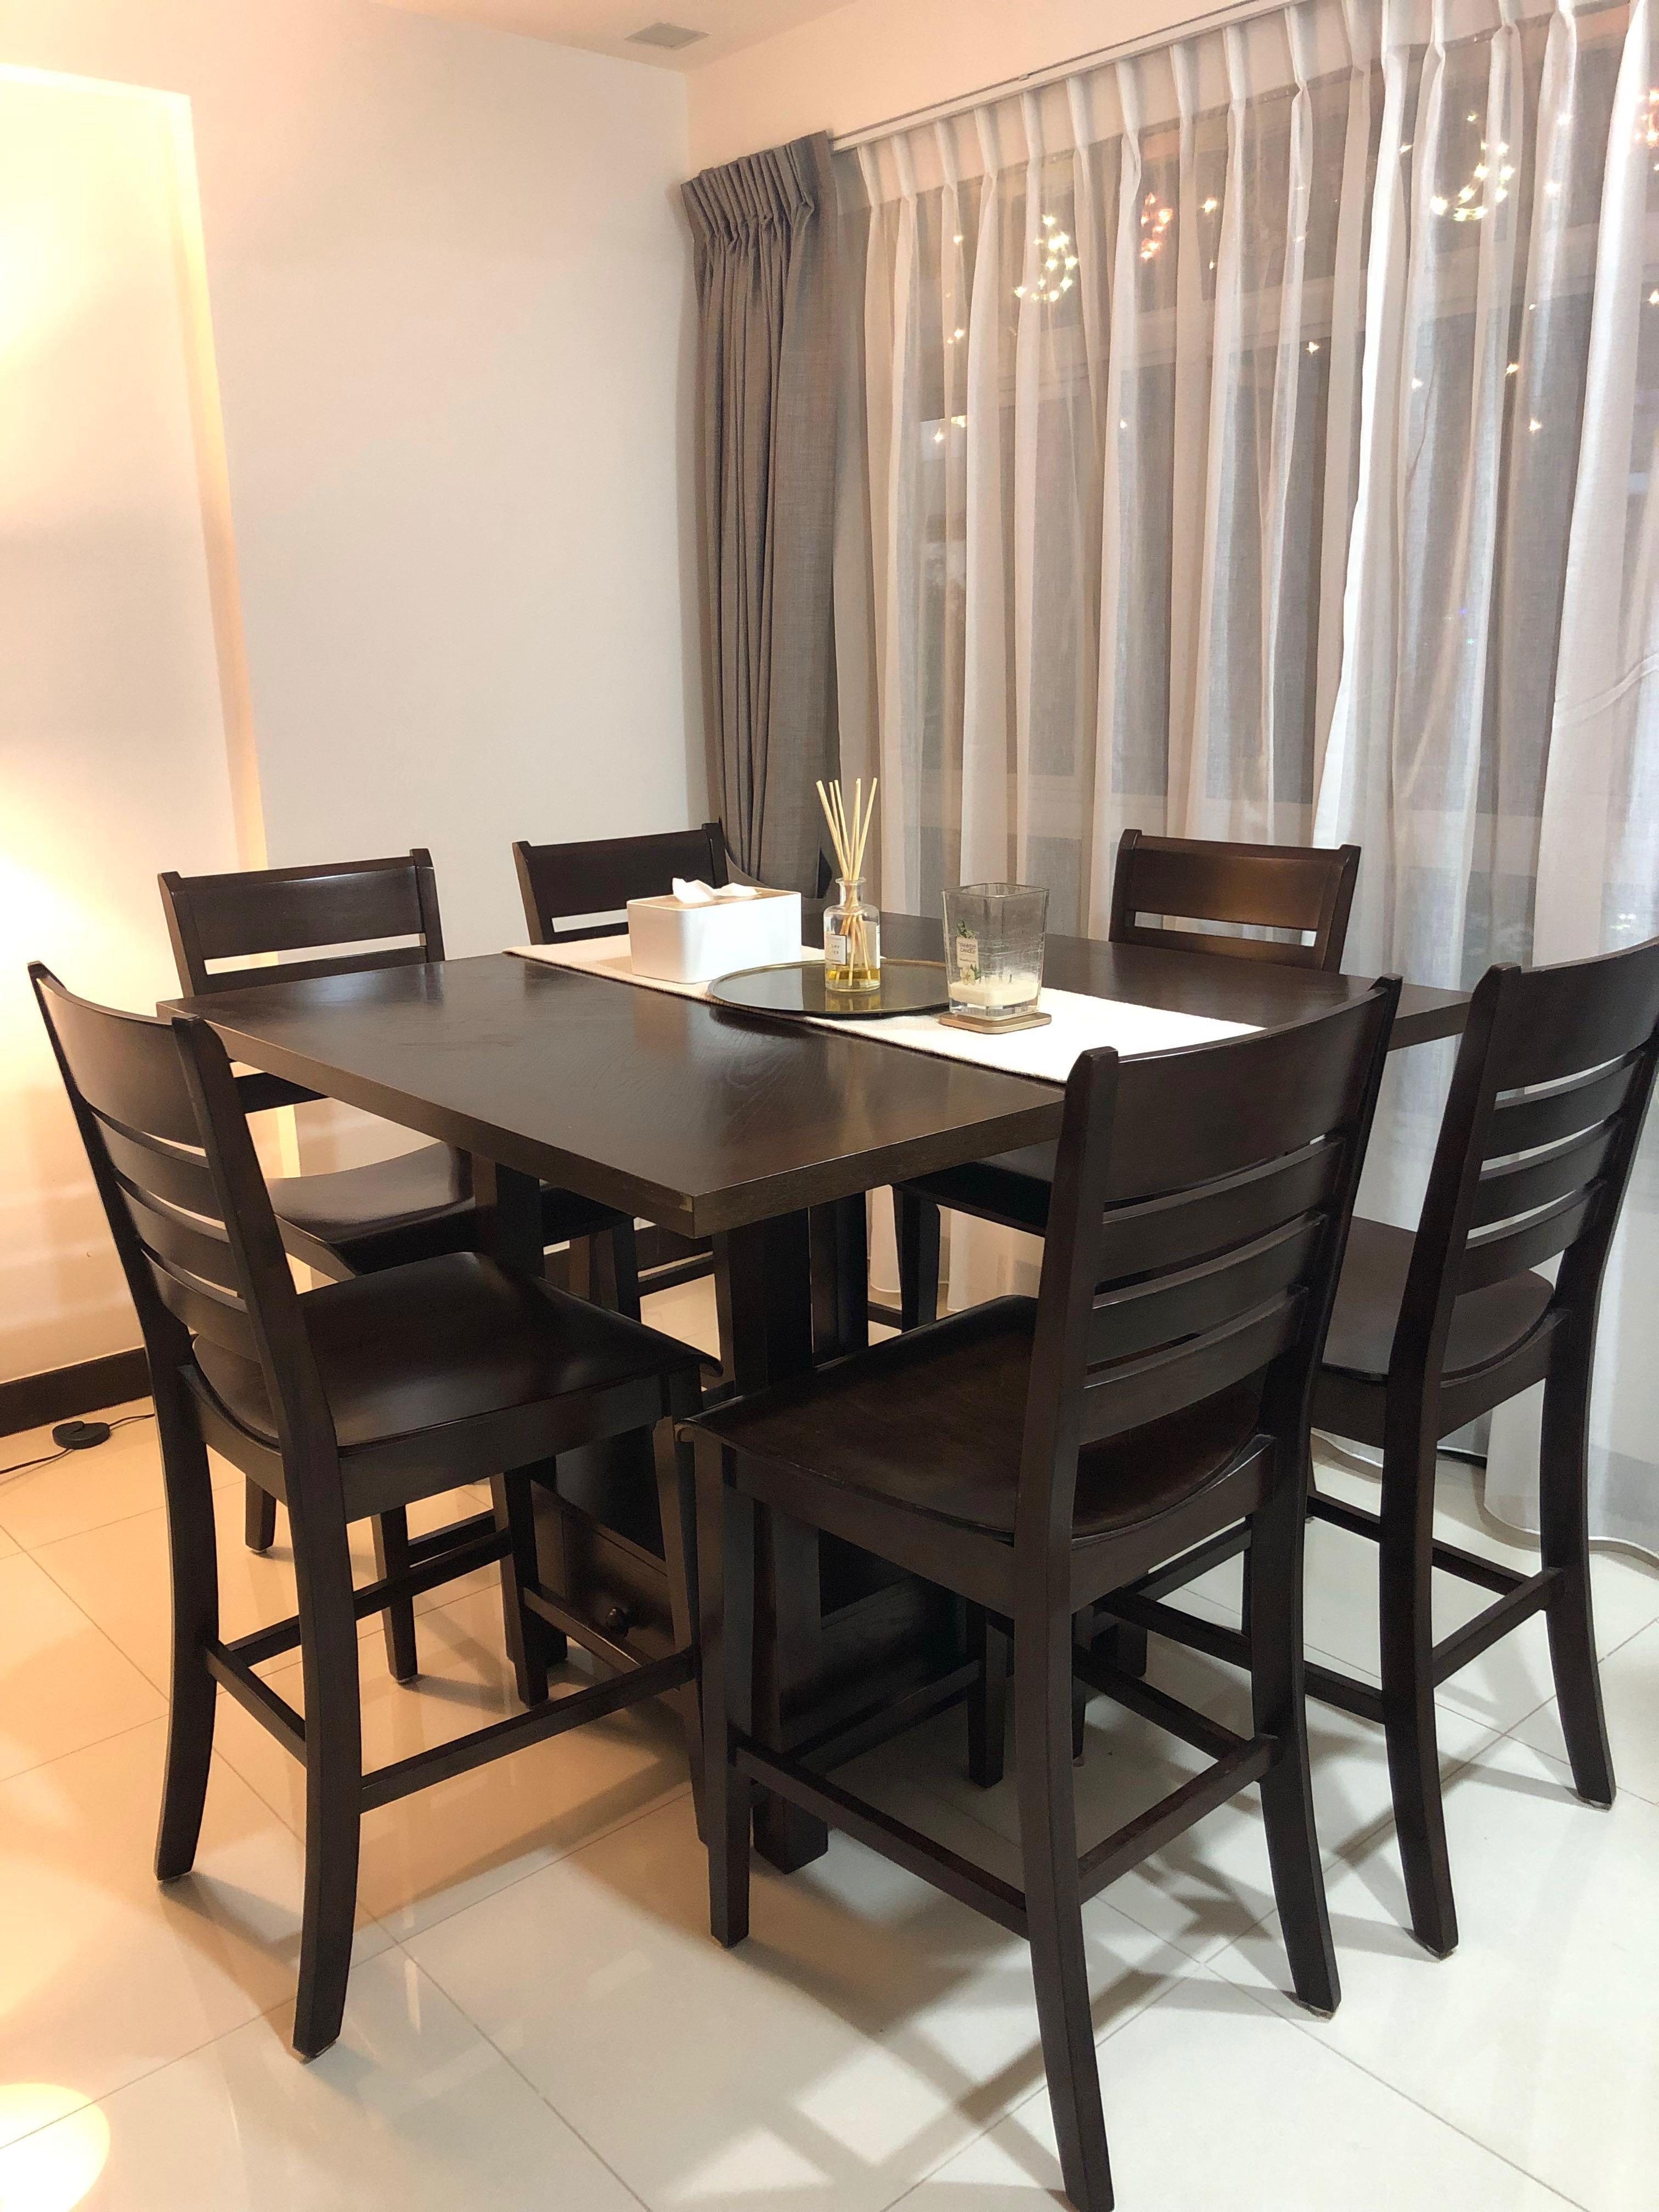 High dining table and High chair